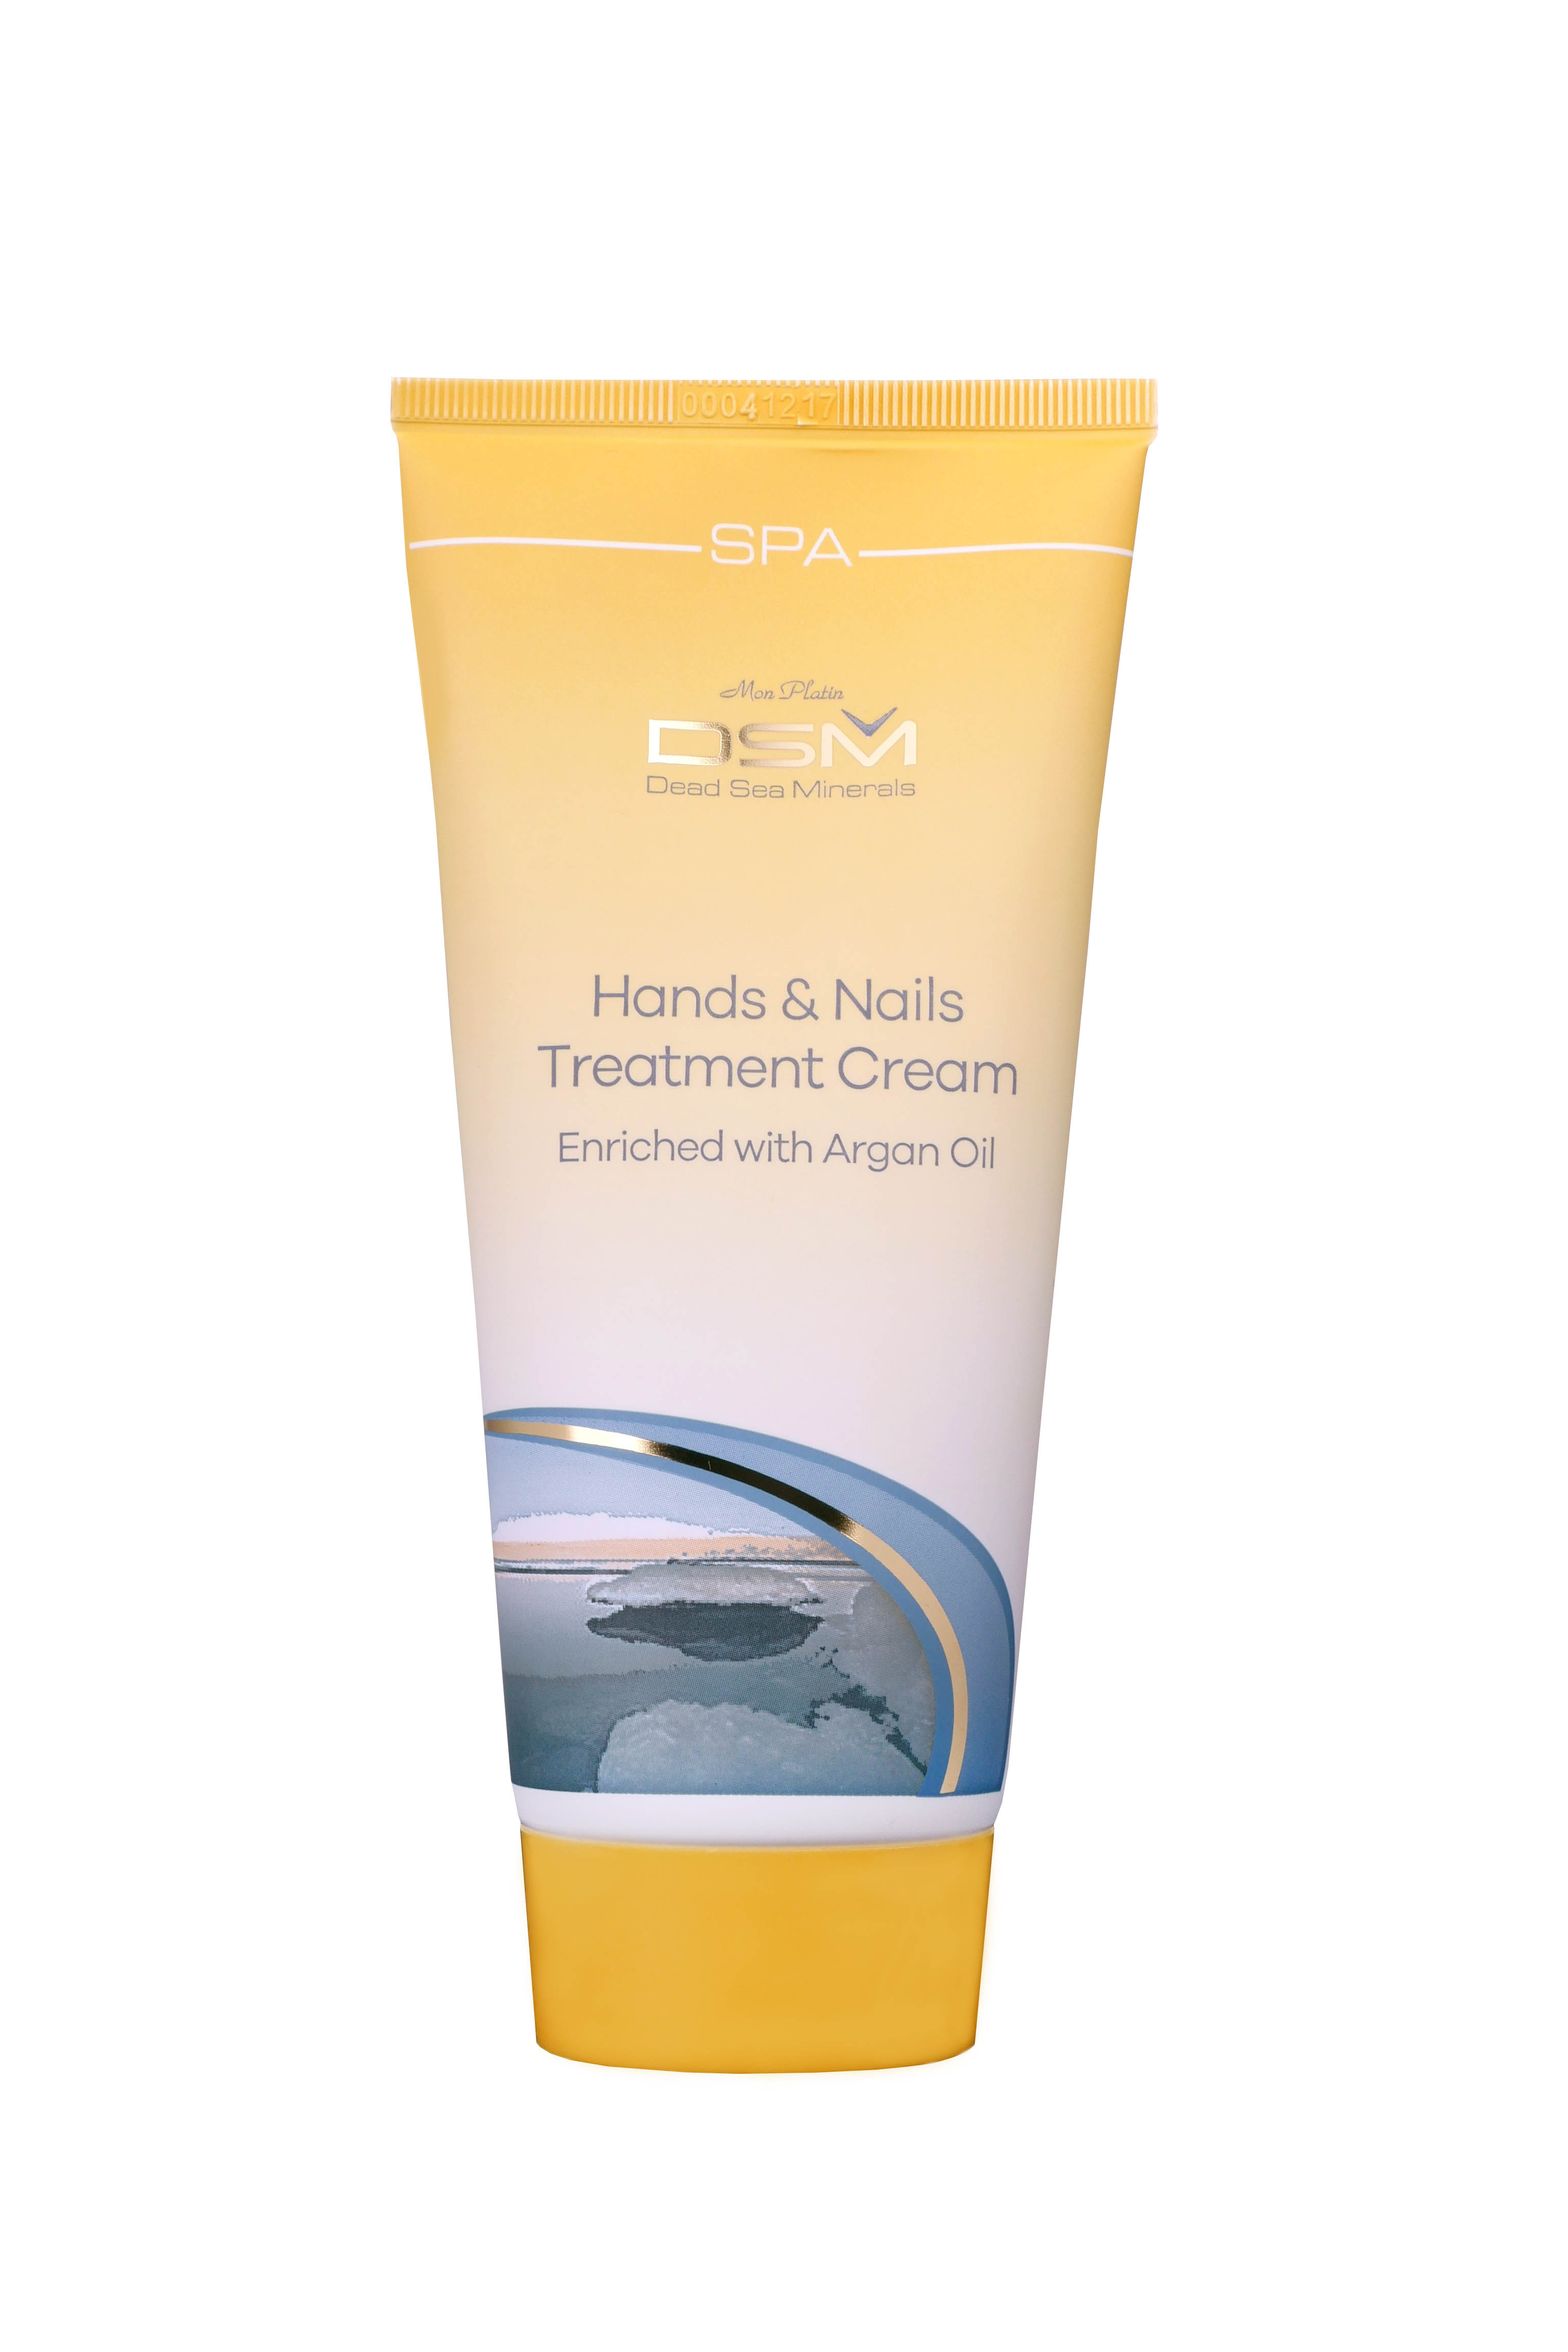 Hands & Nails Treatment Cream with Argan Oil